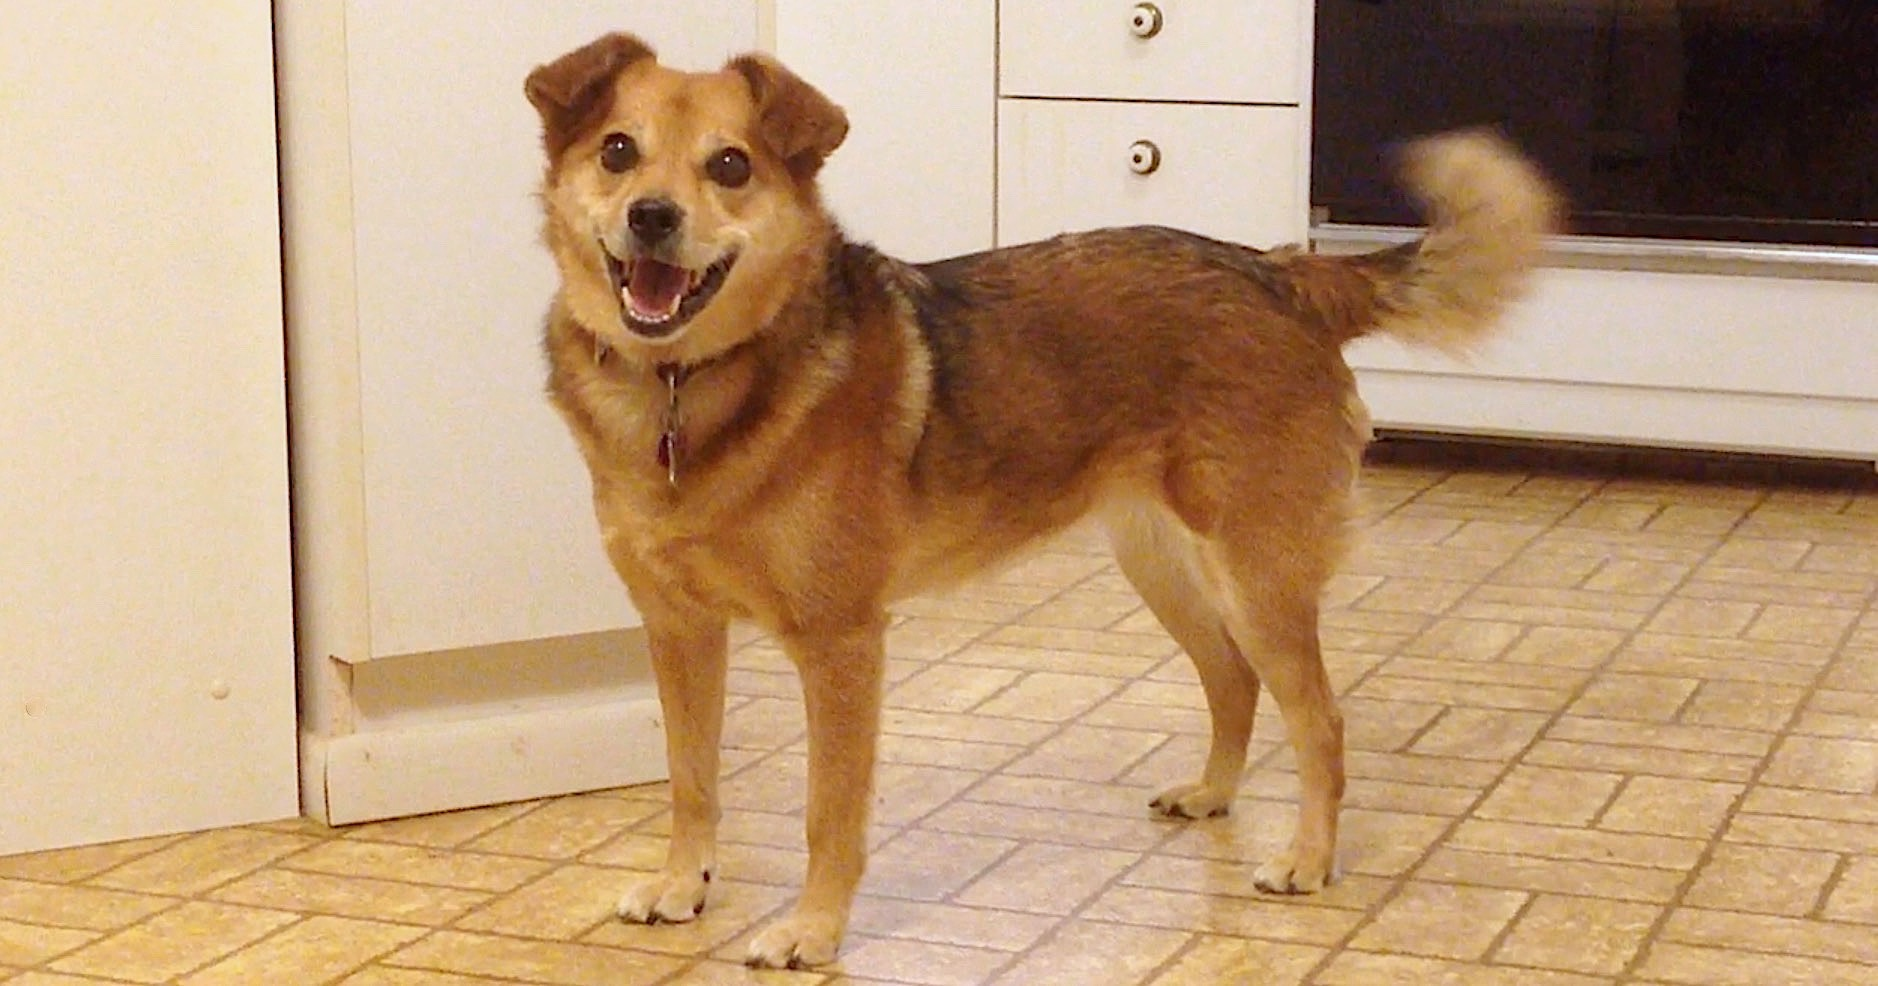 Brown, sable, mixed breed dog standing in a kitchen looking happy